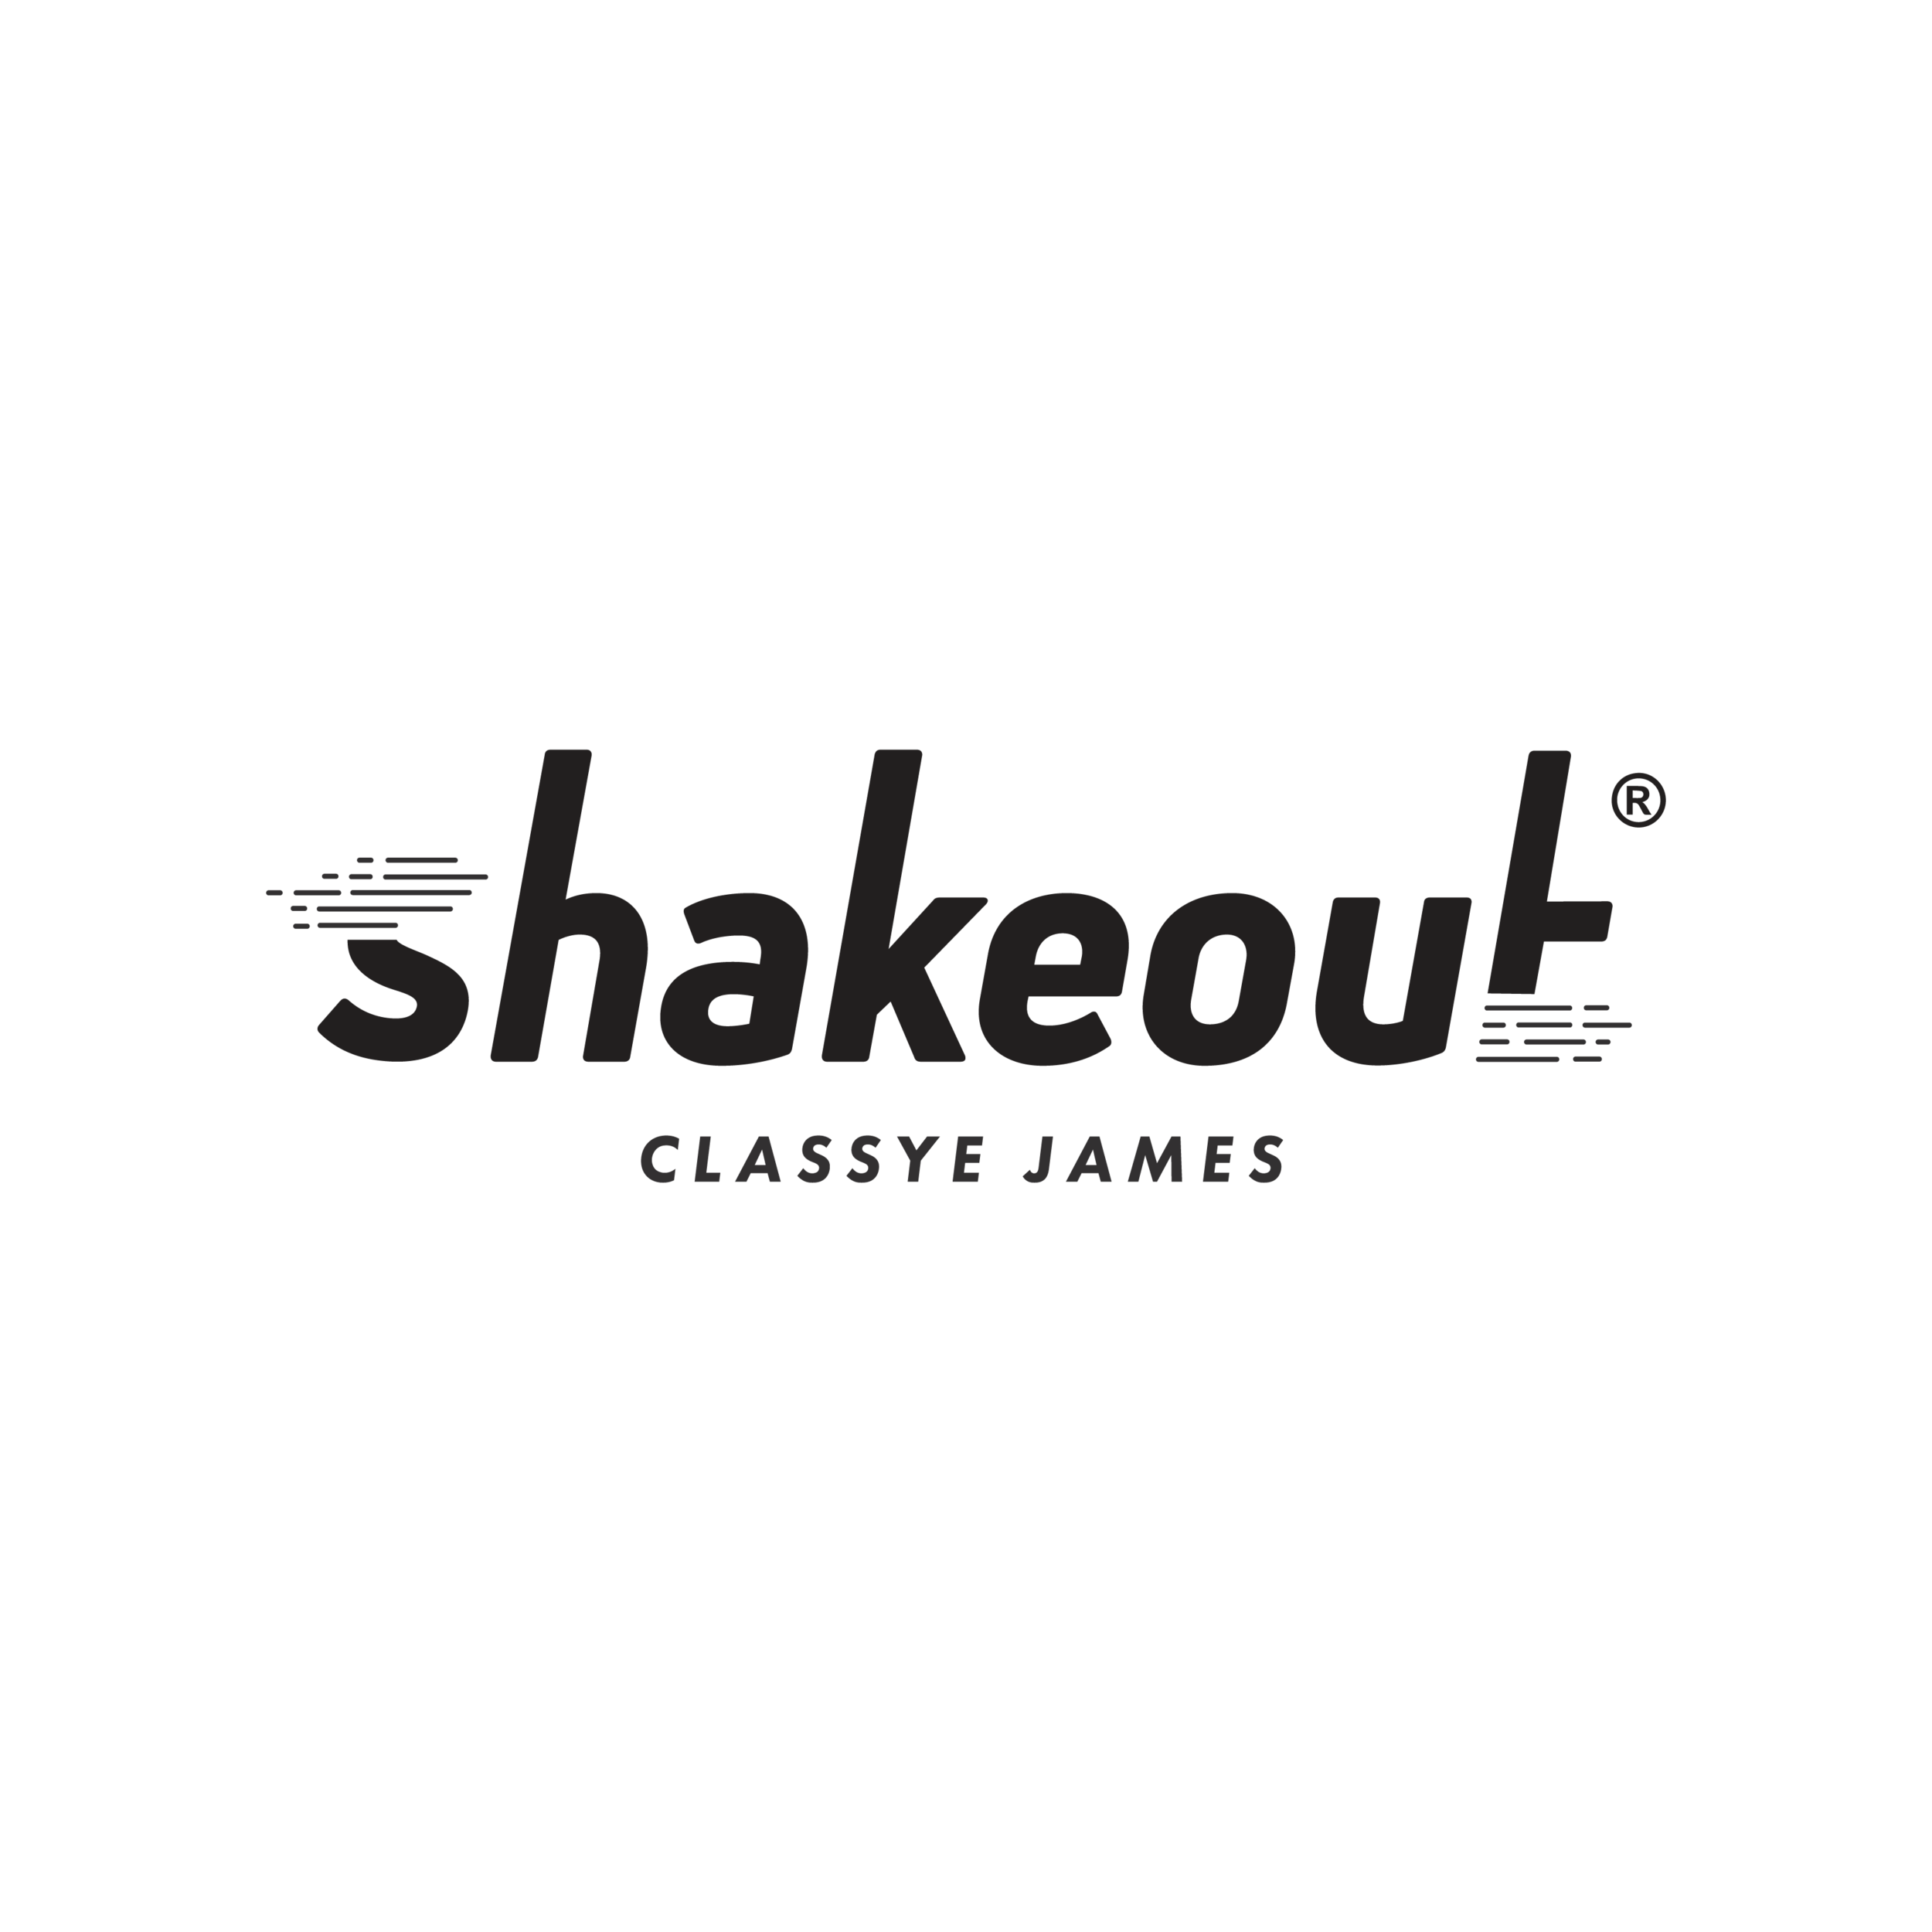 Shakeout LLC | Classye James